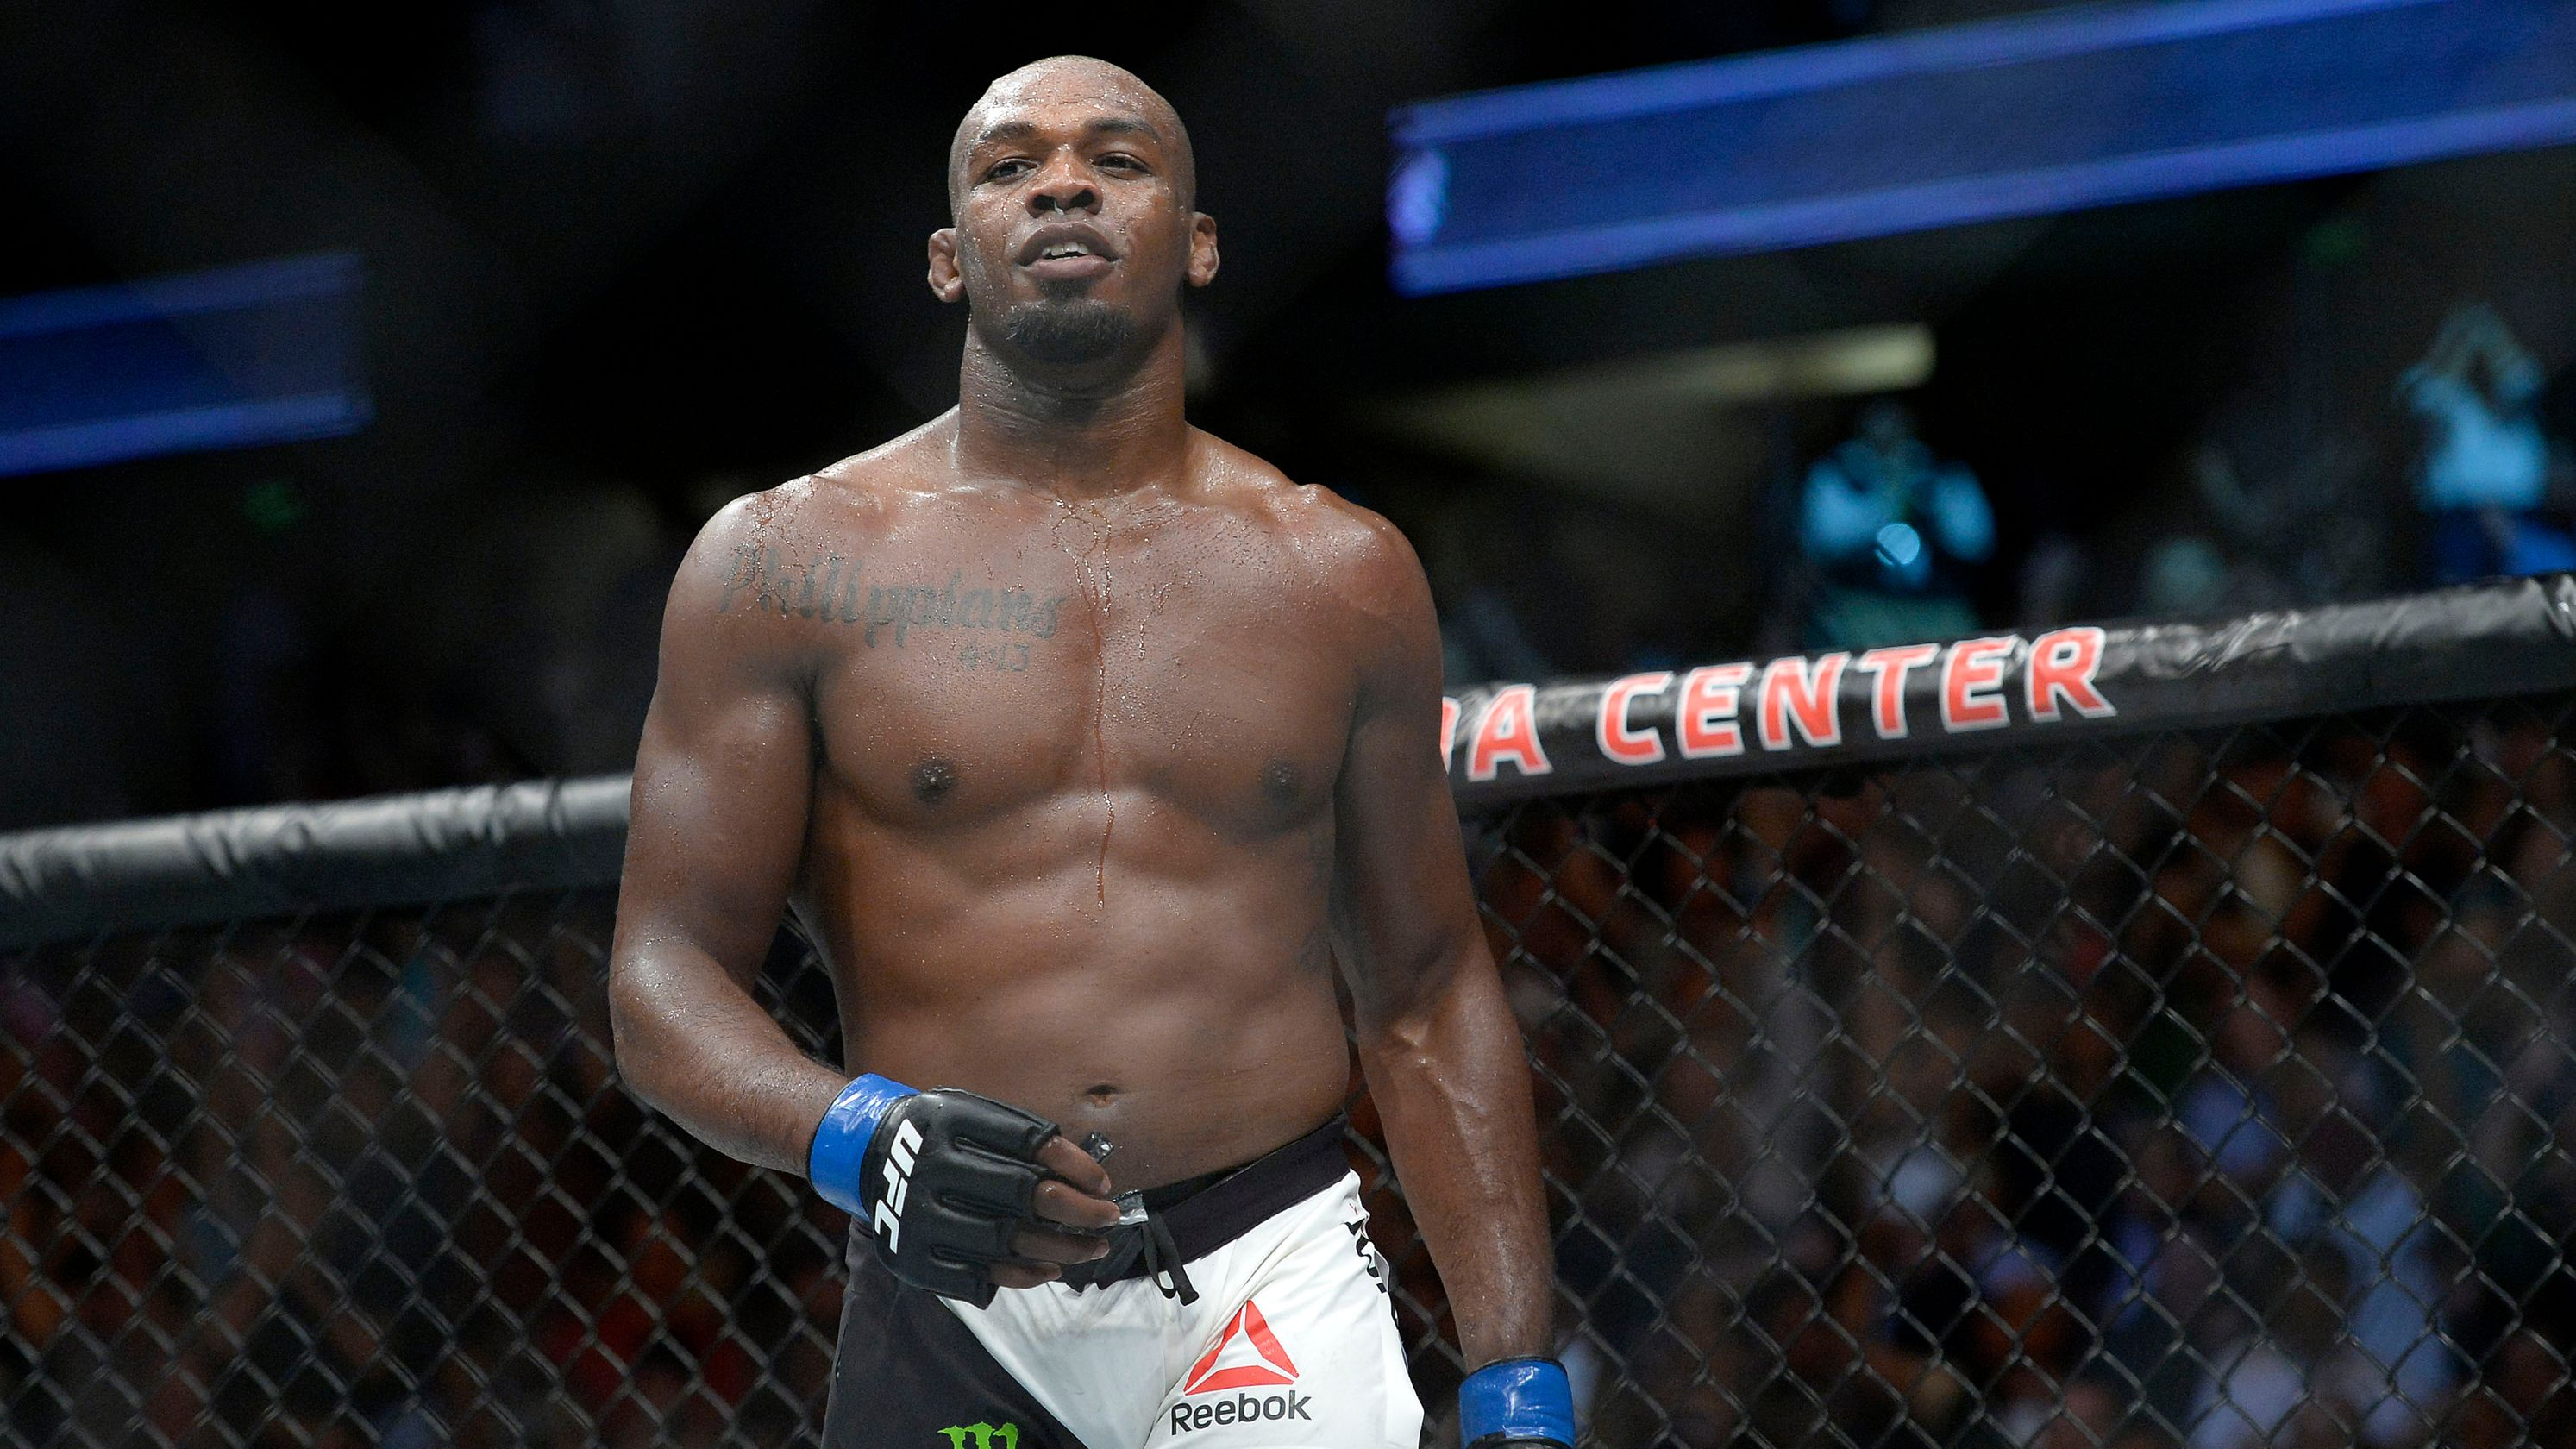 Jon Jones refuses opportunity to do VADA testing before UFC 232 - ufc